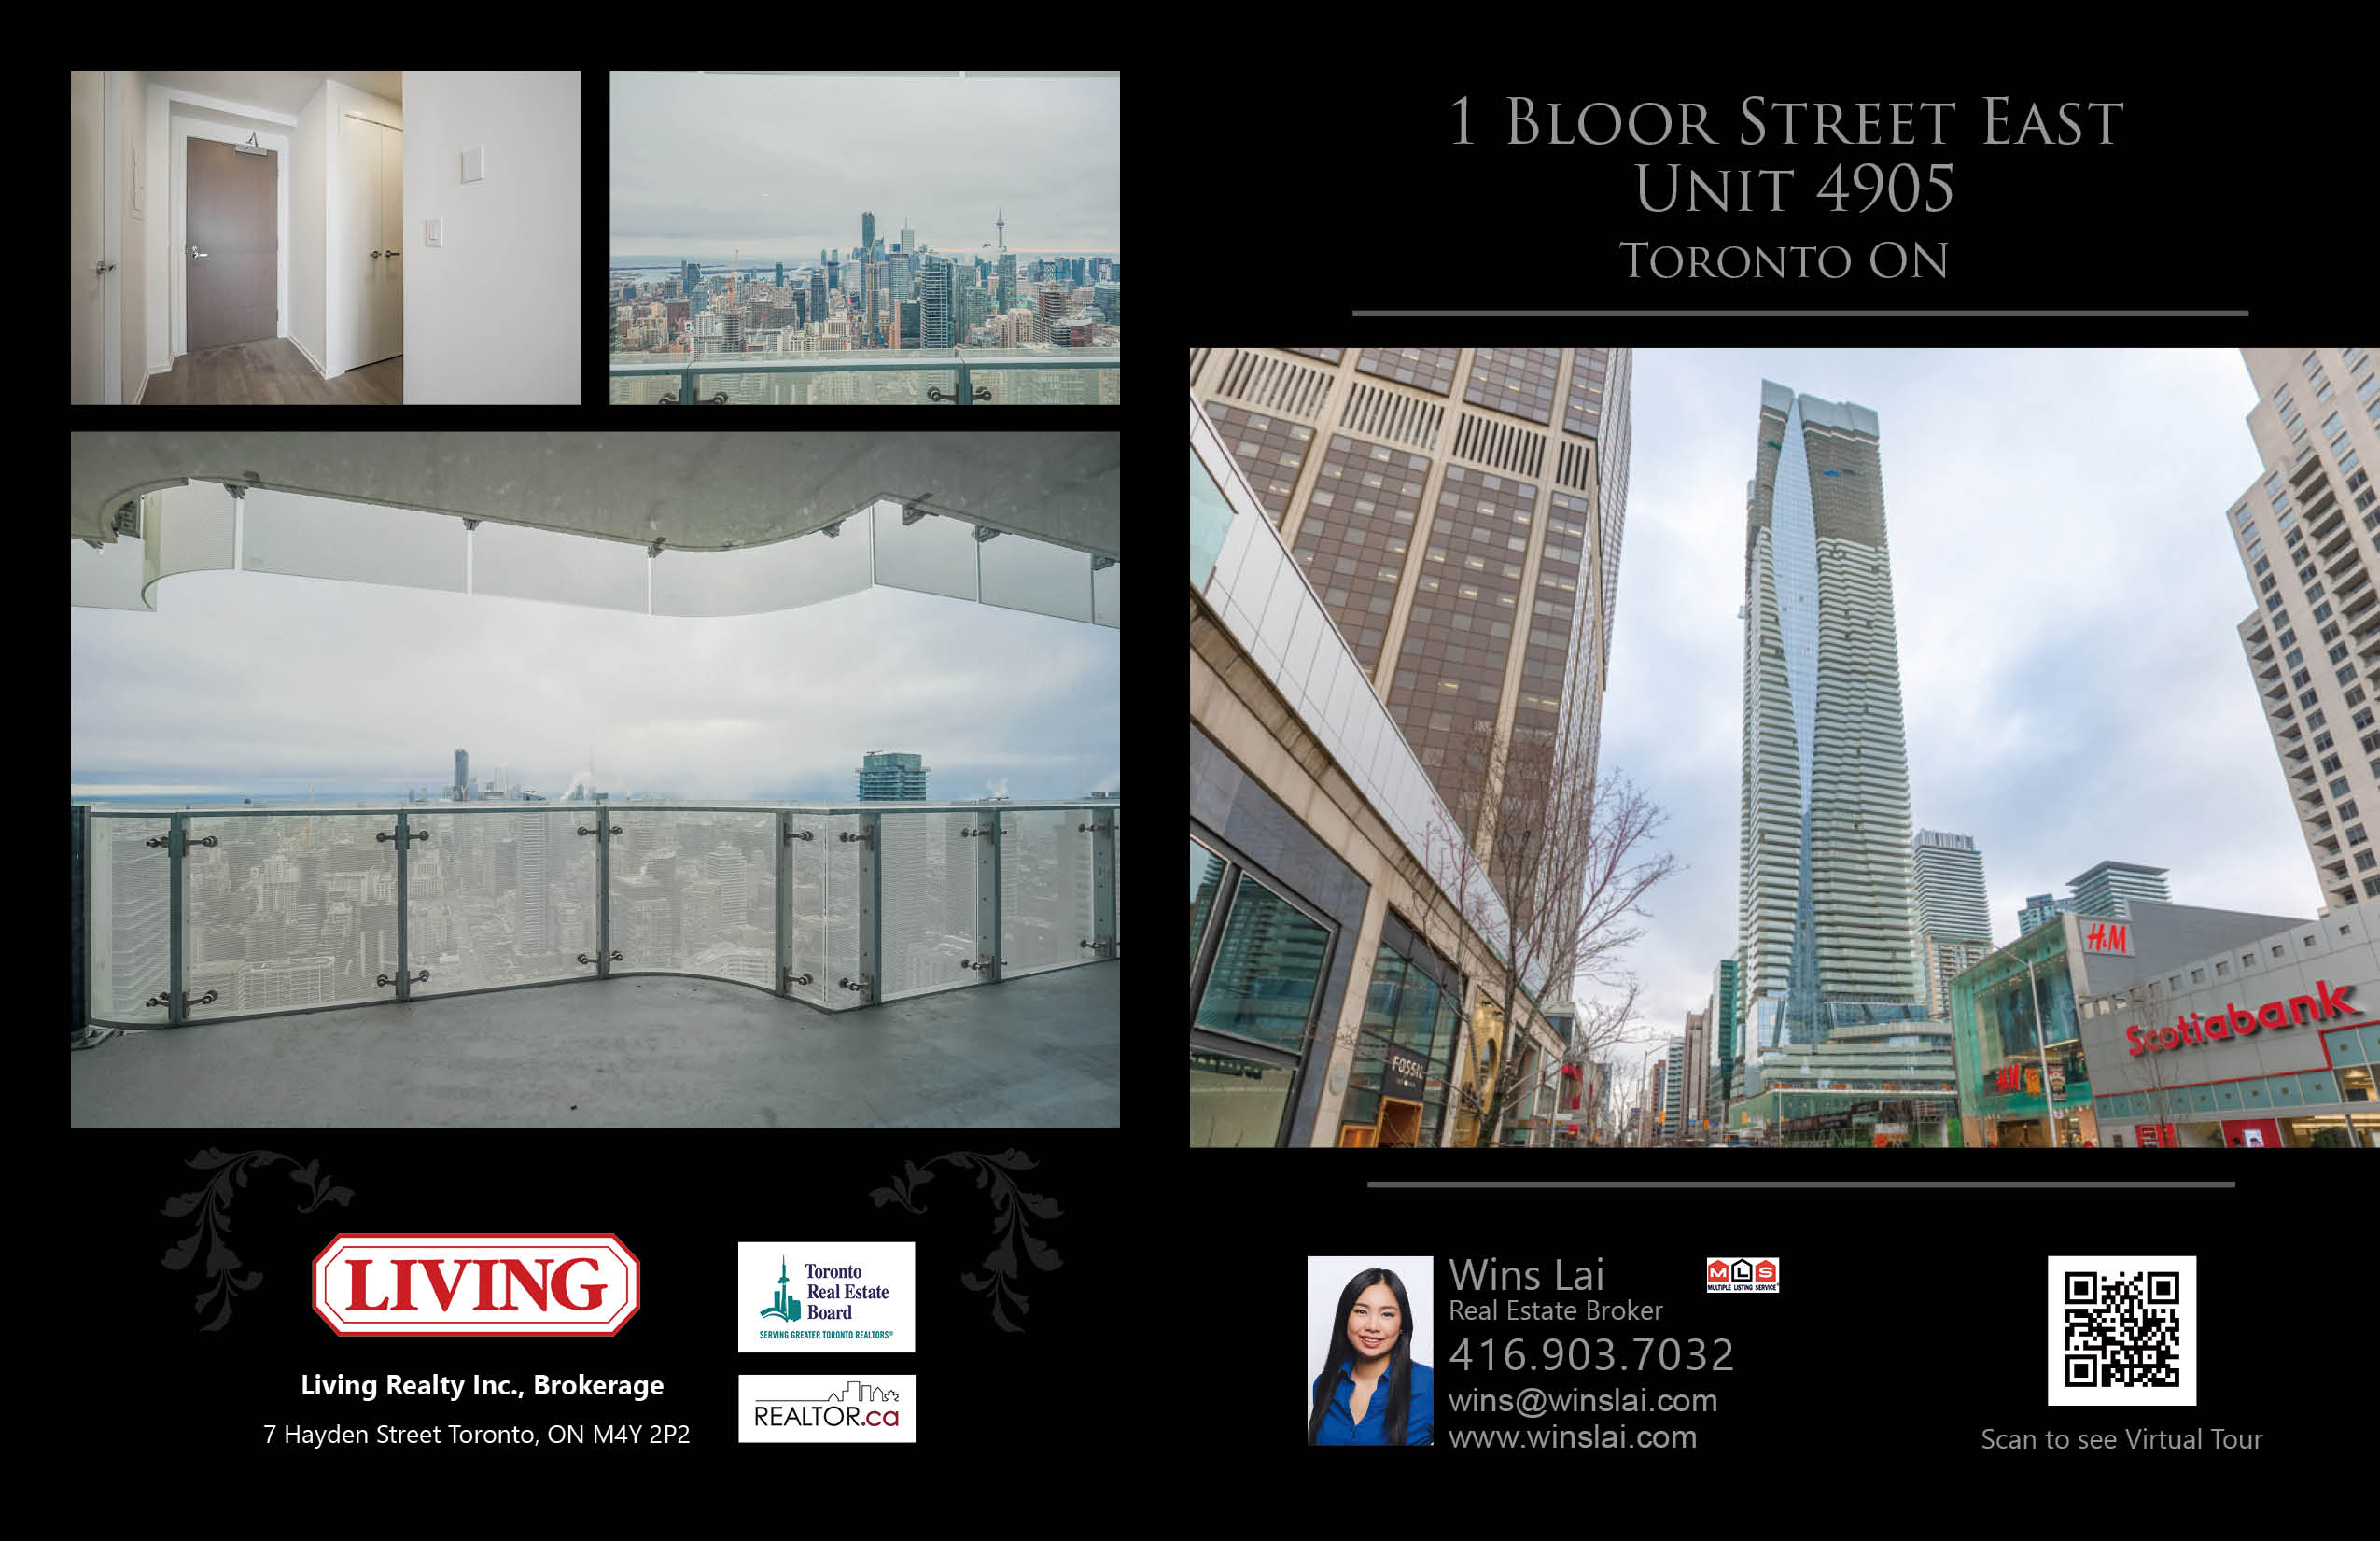 Overview of 1 Bloor Street East - Unit 4905